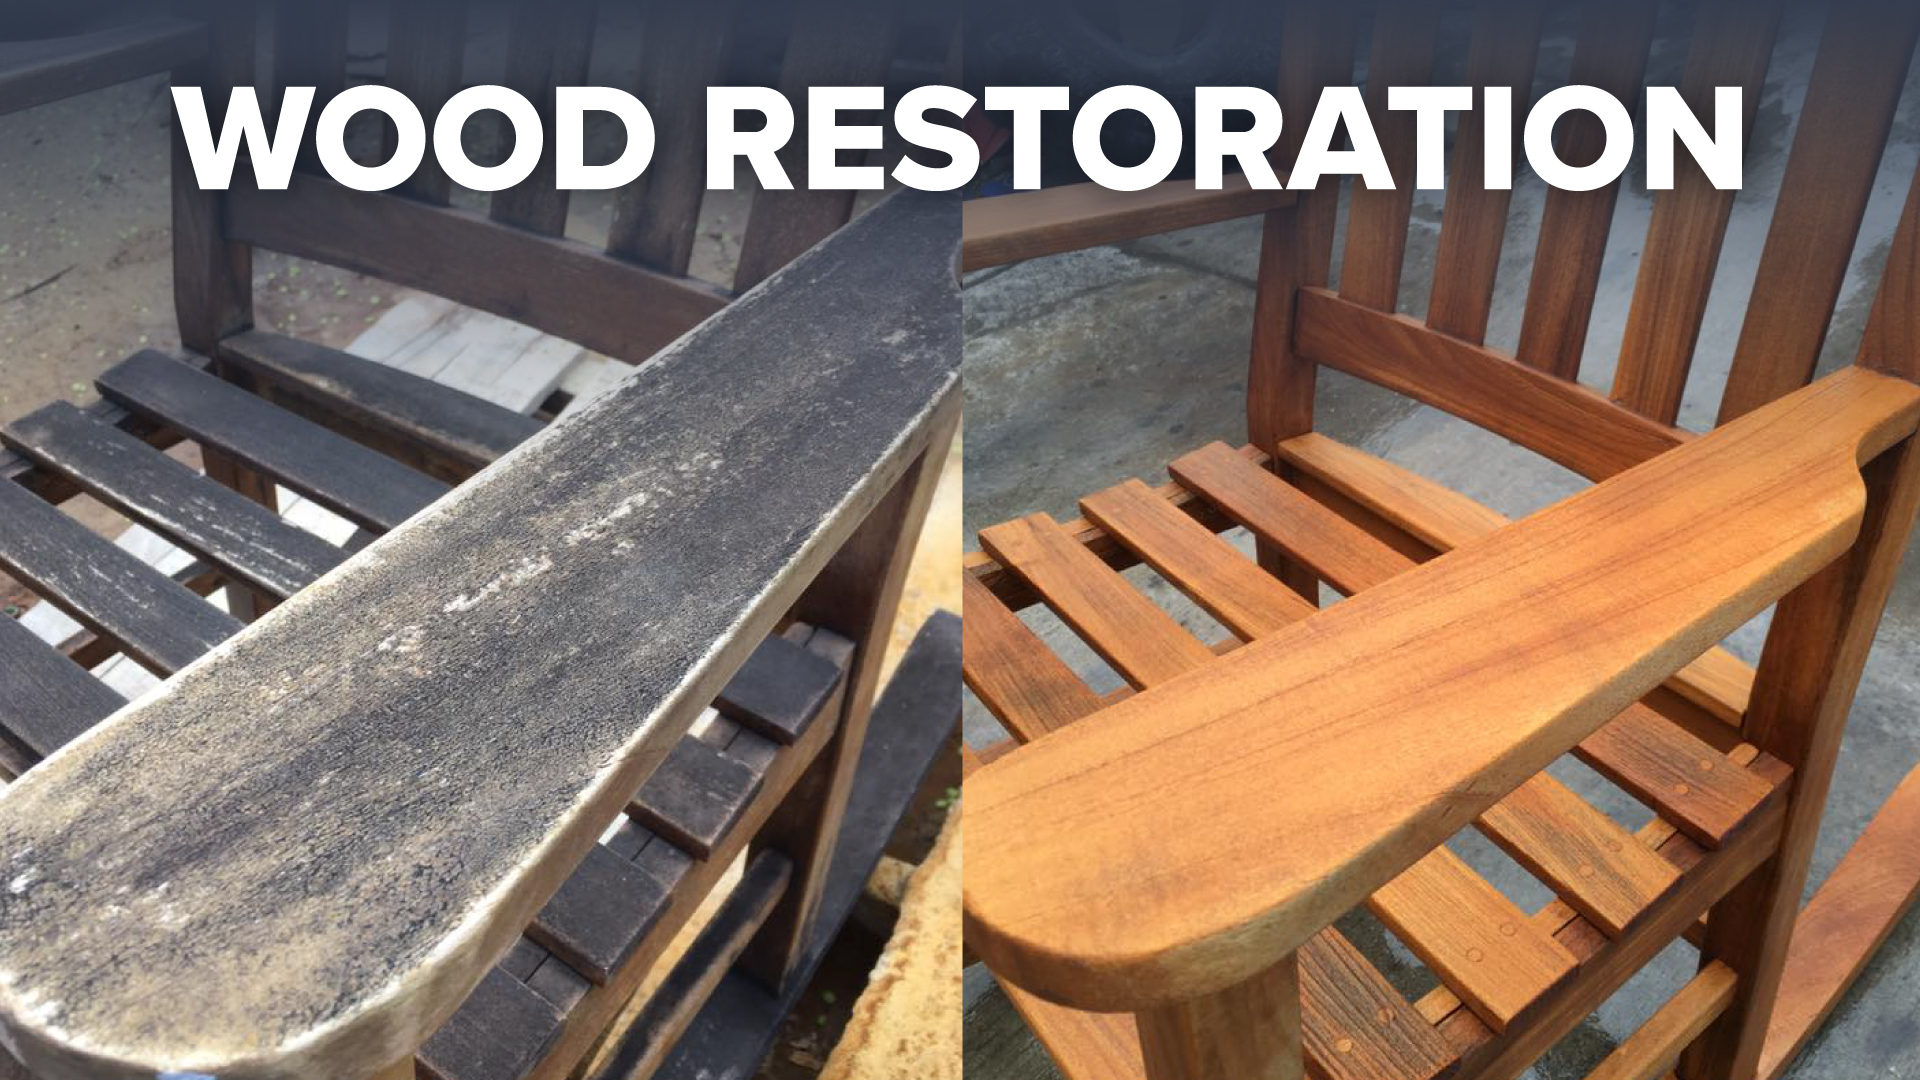 Wood Restoration and Etching